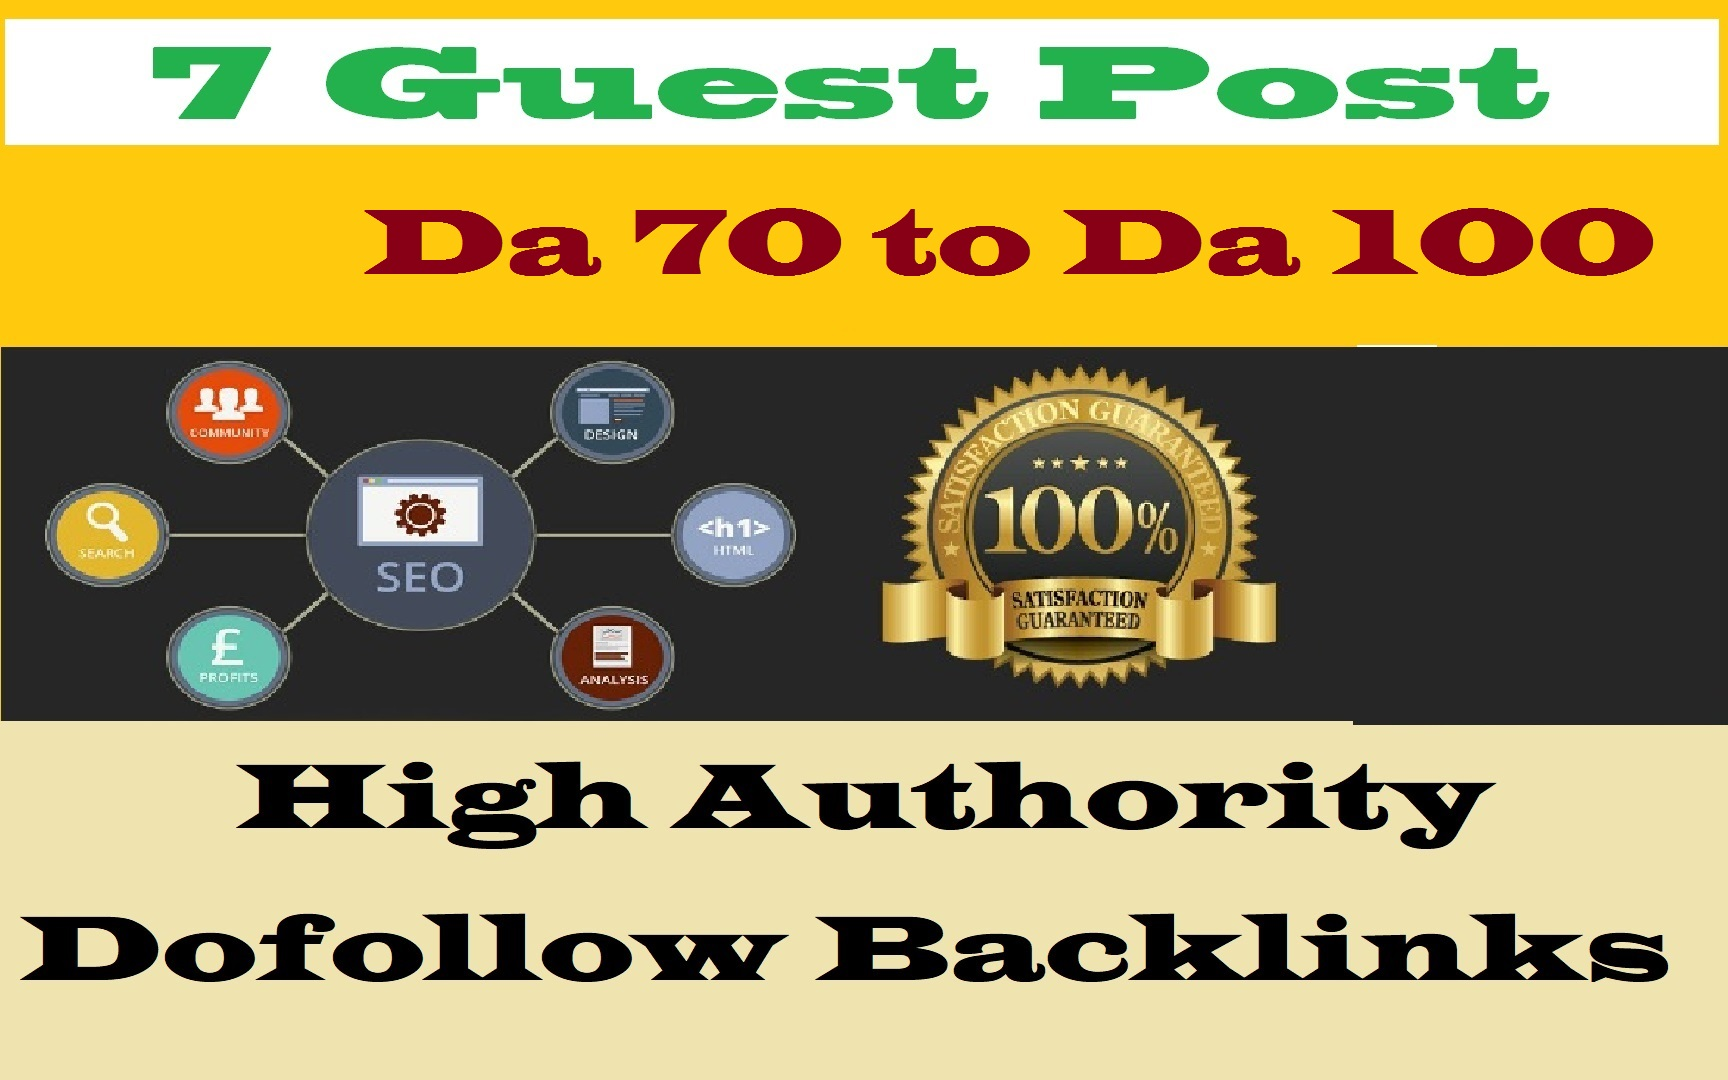 8 Write And Publish Guest Blog Posts On Da 65 To 90 Websites for $56